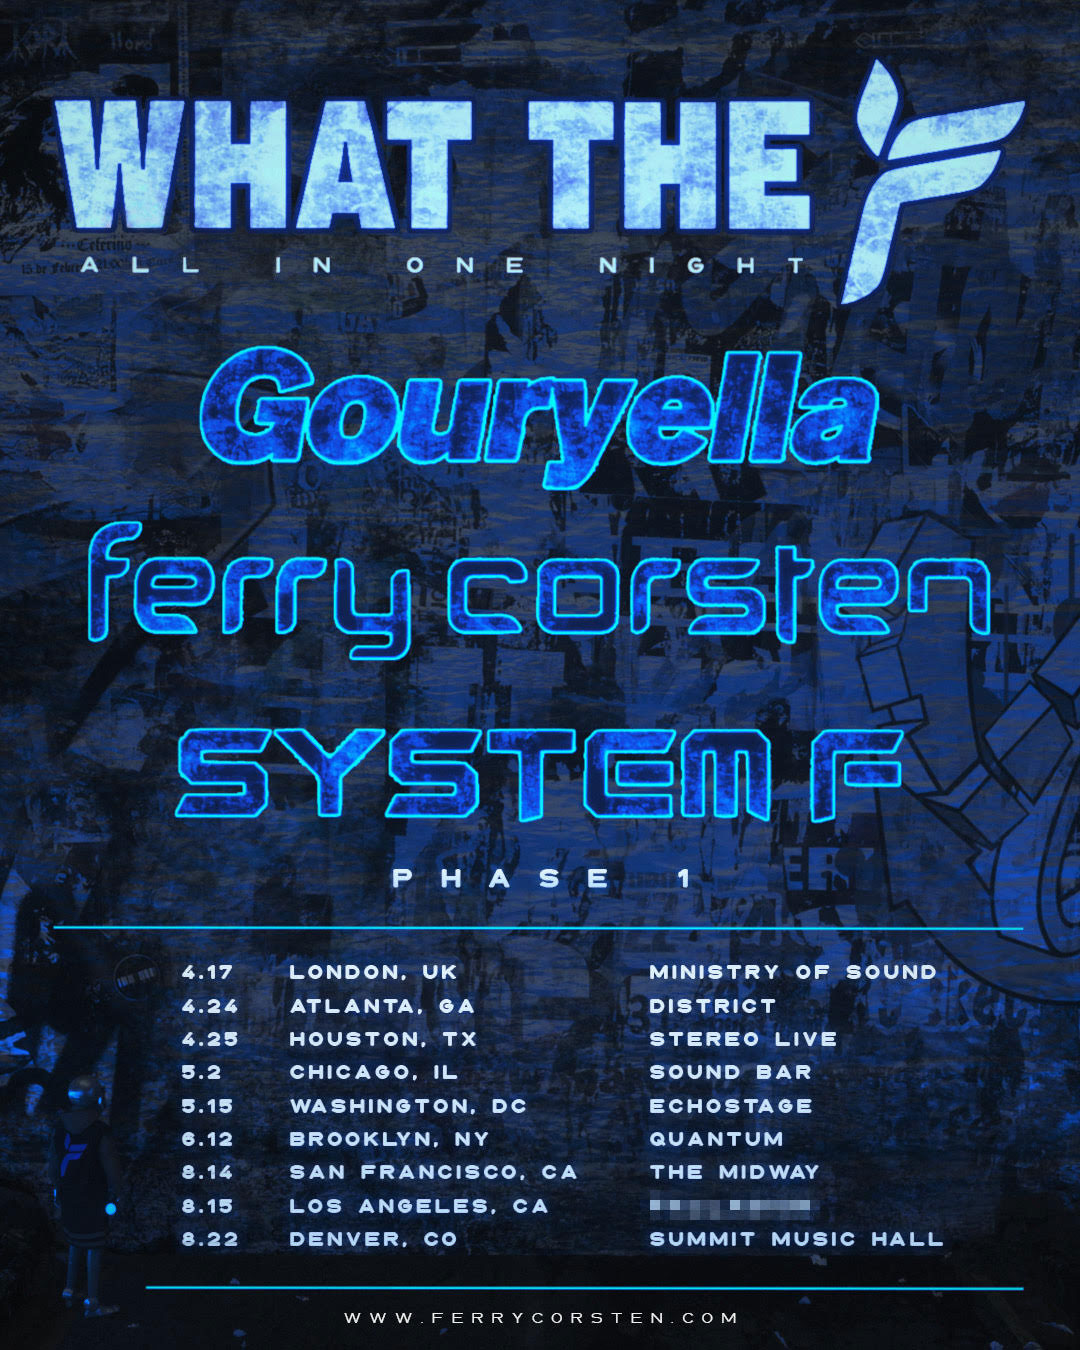 Ferry Corsten Presents What the F 2020 Tour Phase 1